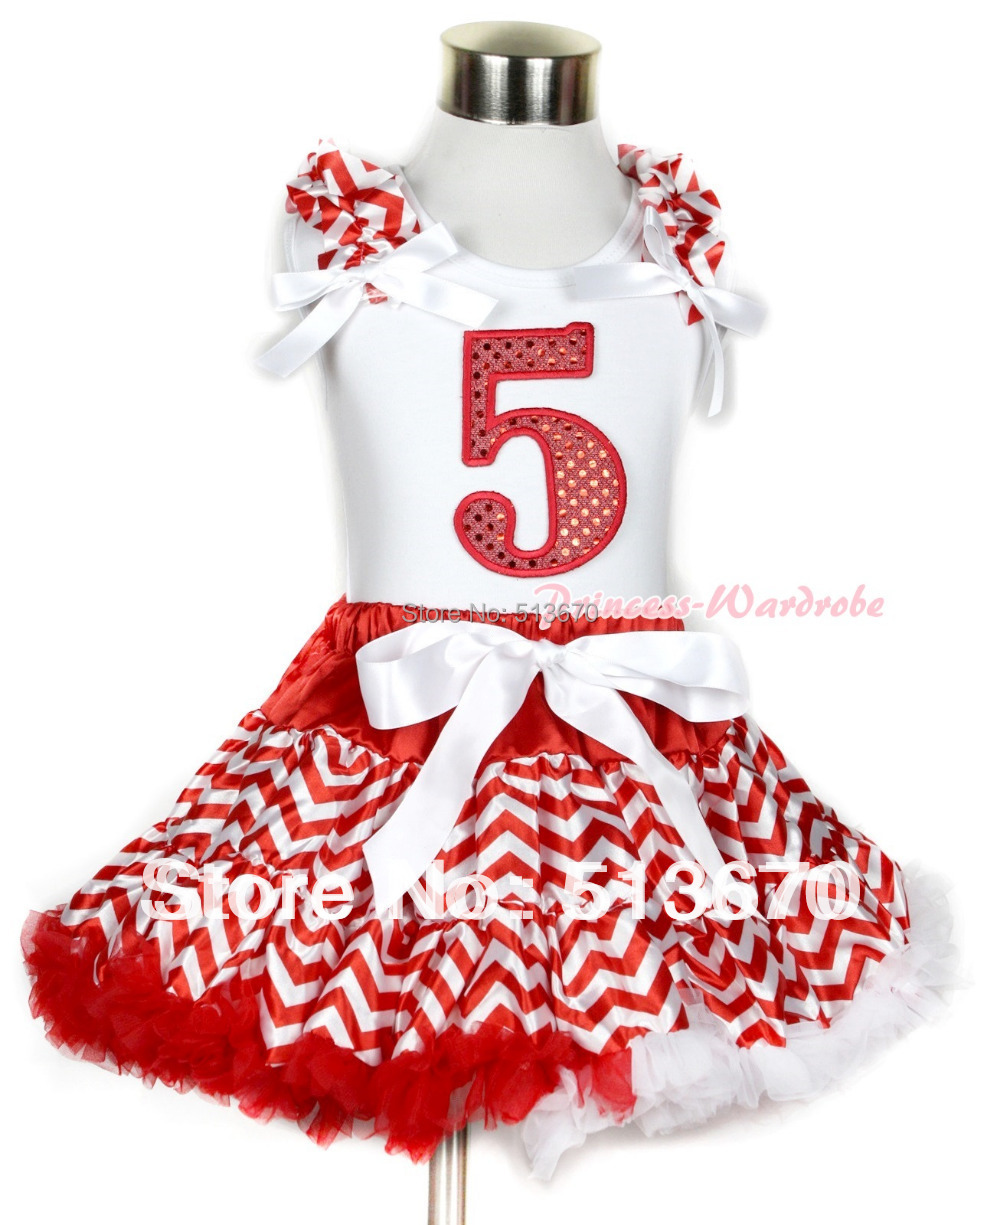 Xmas White Tank Top 5th Sparkle Red Birthday Number Red White Wave Ruffles & White Bow & Red White Wave Pettiskirt MAMG750 red black 8 layered pettiskirt red sparkle number ruffle red bow tank top mamg575